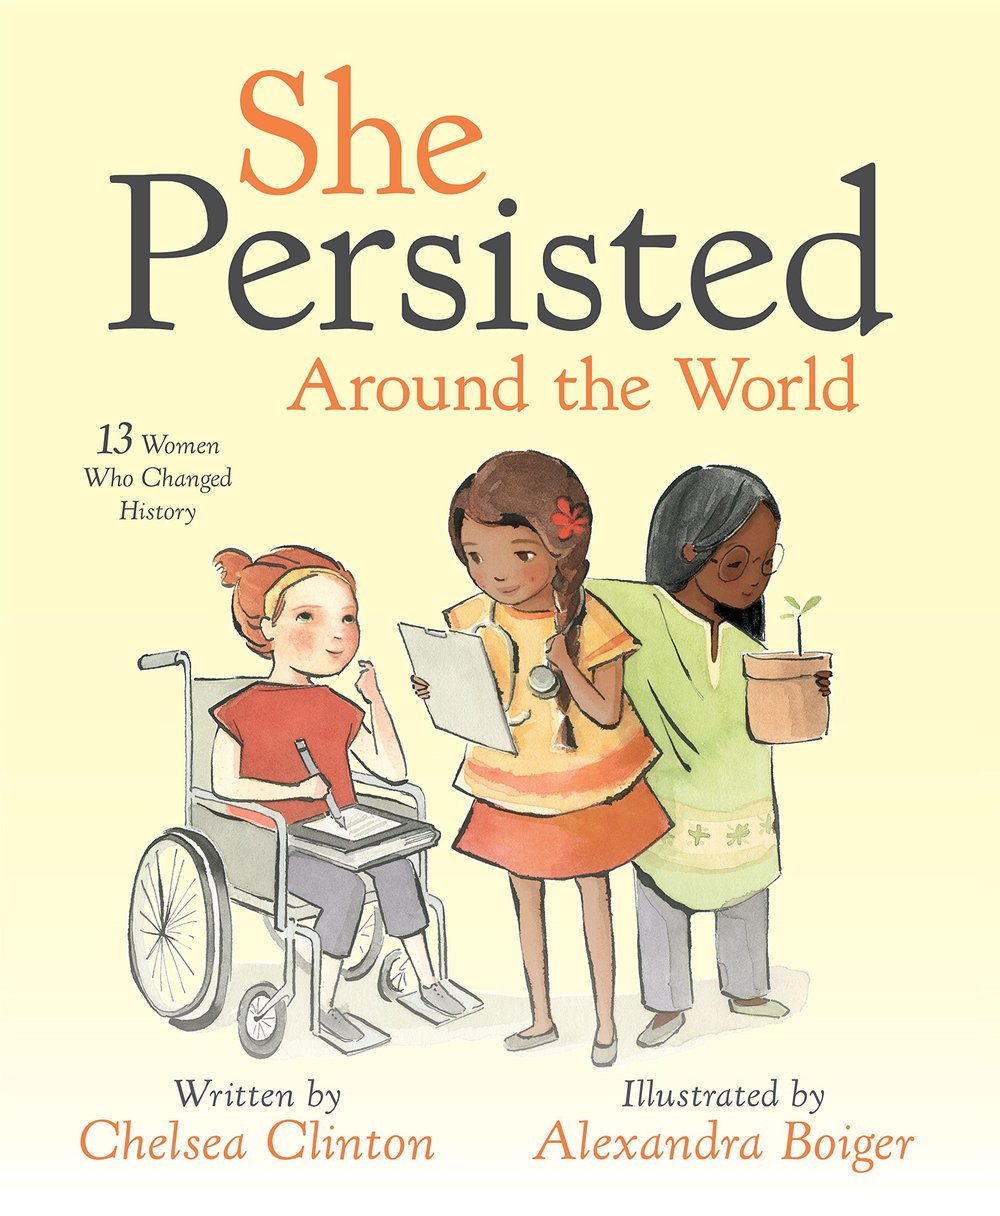 20. She Persisted Around the World - In this book, Chelsea Clinton introduces readers to a group of thirteen incredible women who have shaped history all across the globe. 3 diverse women who stood up to discouragement based on their gender and succeeded in long-lasting ways. The artwork shows these women not only as themselves, but as their younger selves, striving to reach higher goals they were told weren't available to them.